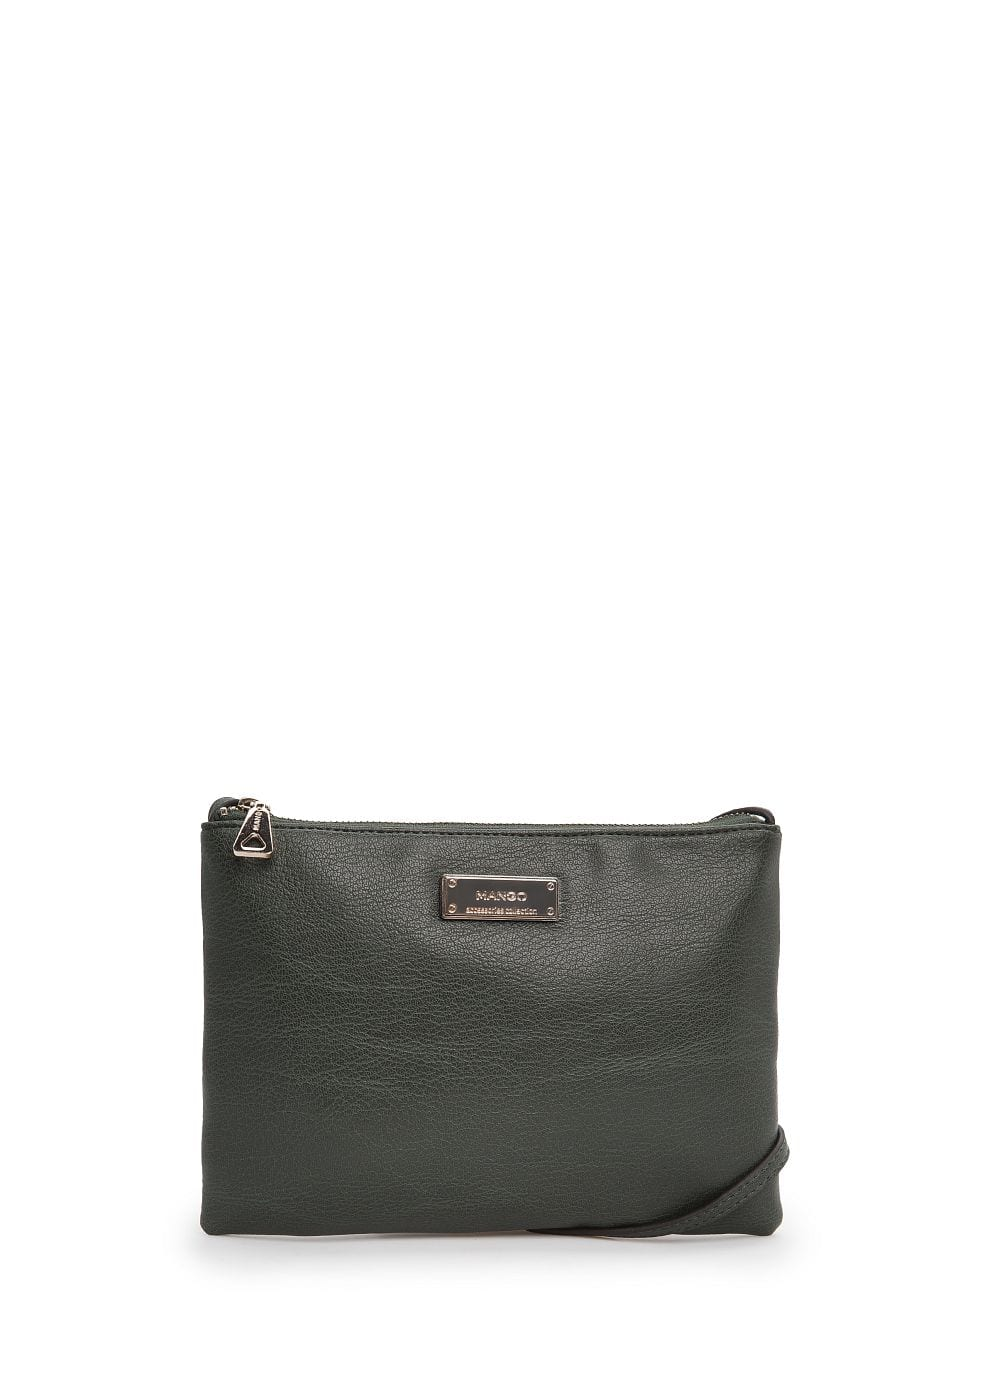 Faux leather shoulder bag